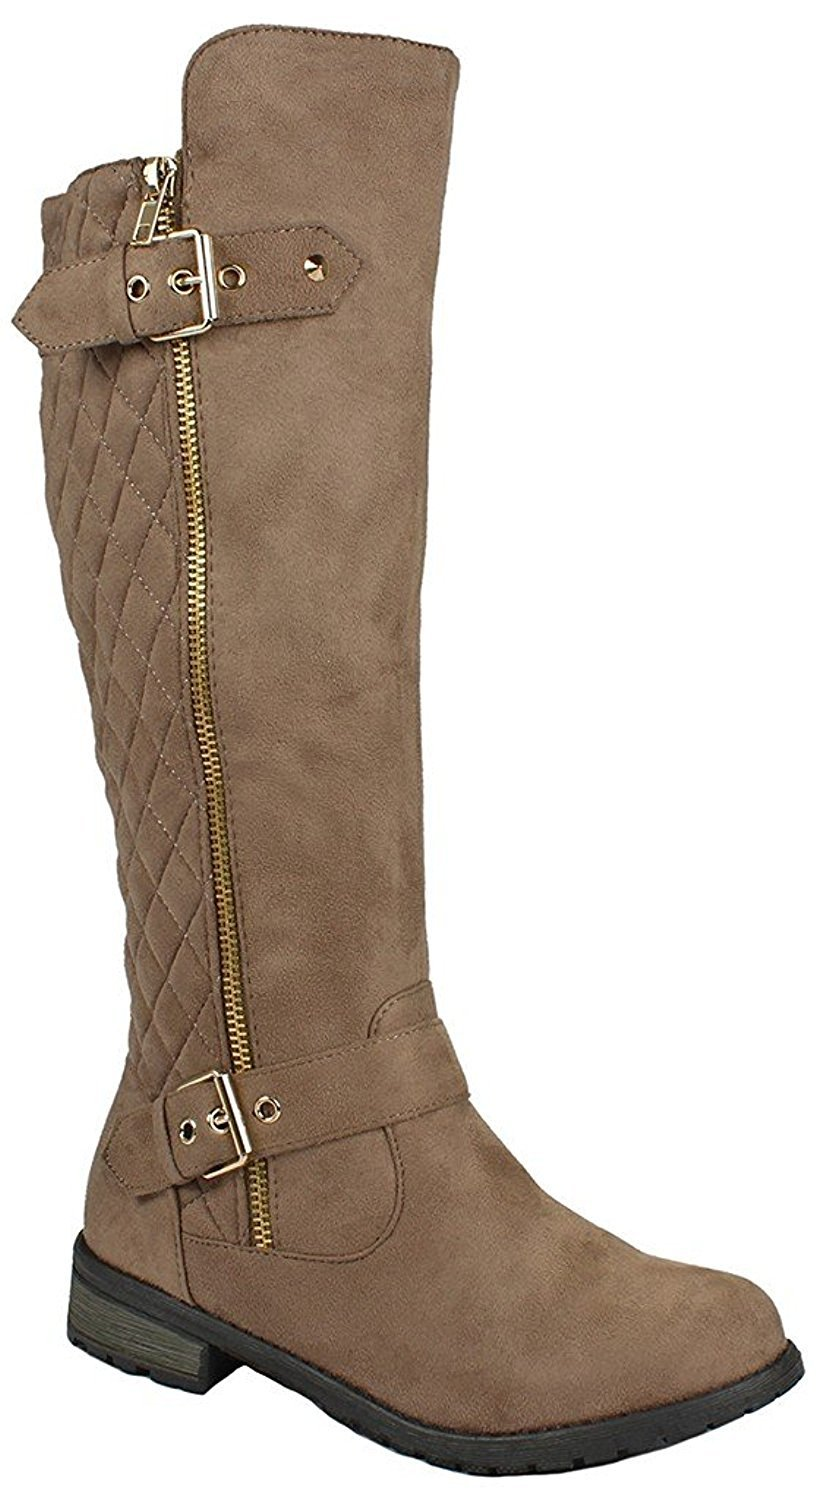 Forever Mango-21 Women's Winkle Back Shaft Side Zip Knee High Flat Riding Boots Taupe Nubuck 7.5